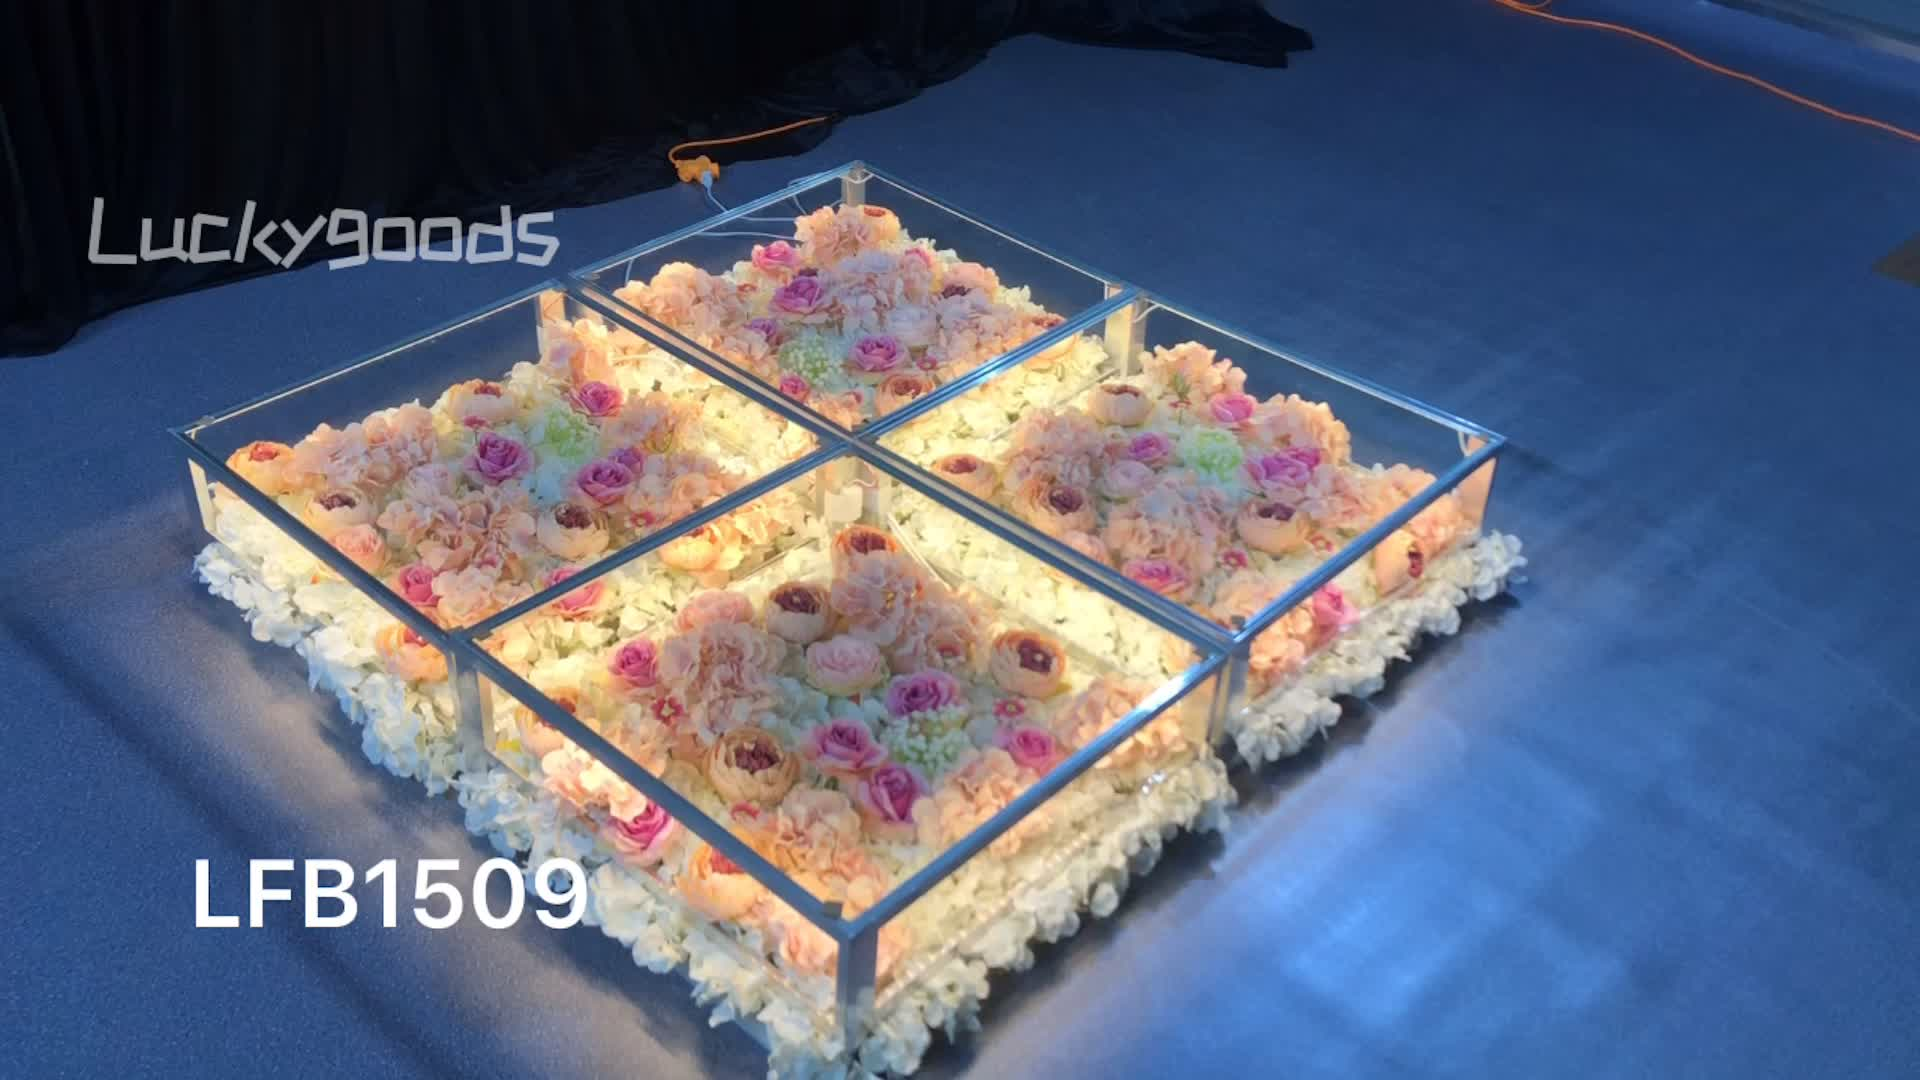 LFB1509 Luckygoods wholesale LED dancing floor panel with artificial flowers